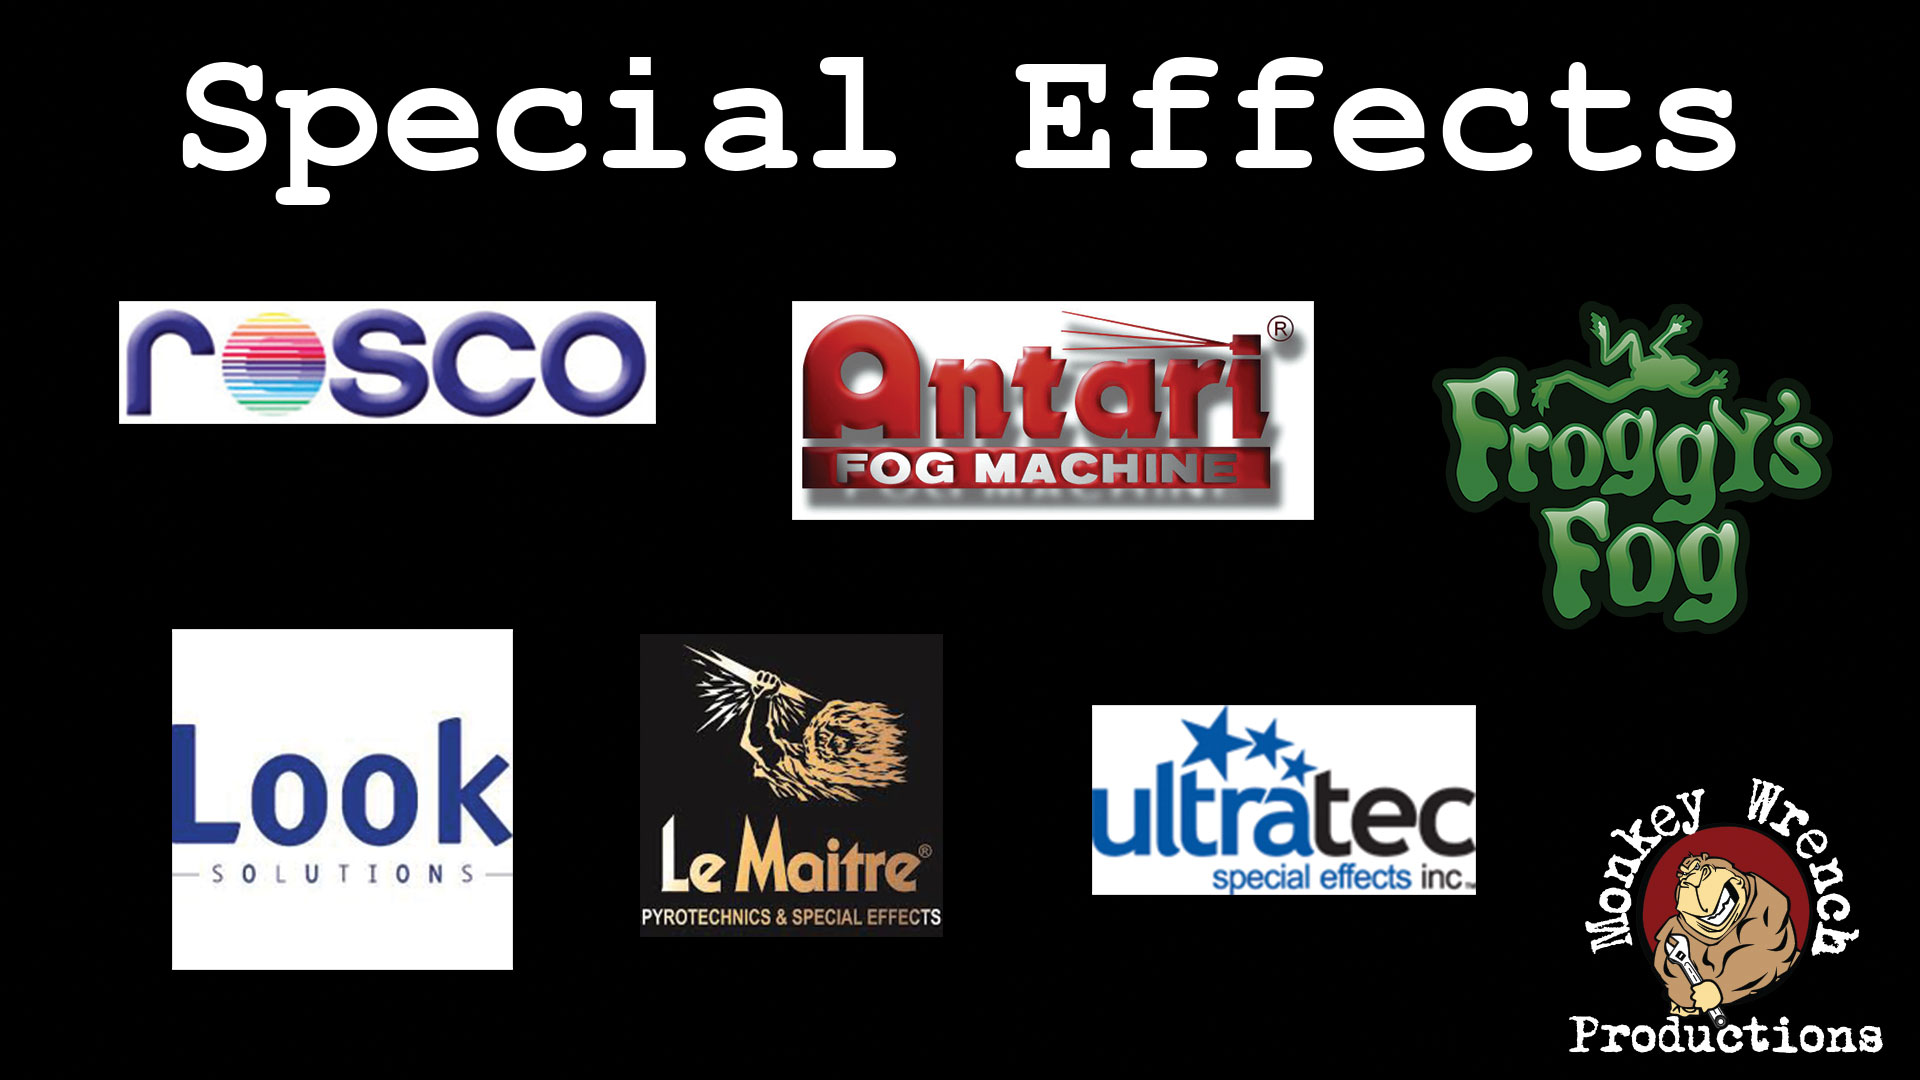 Special effects manufactuerers carried.